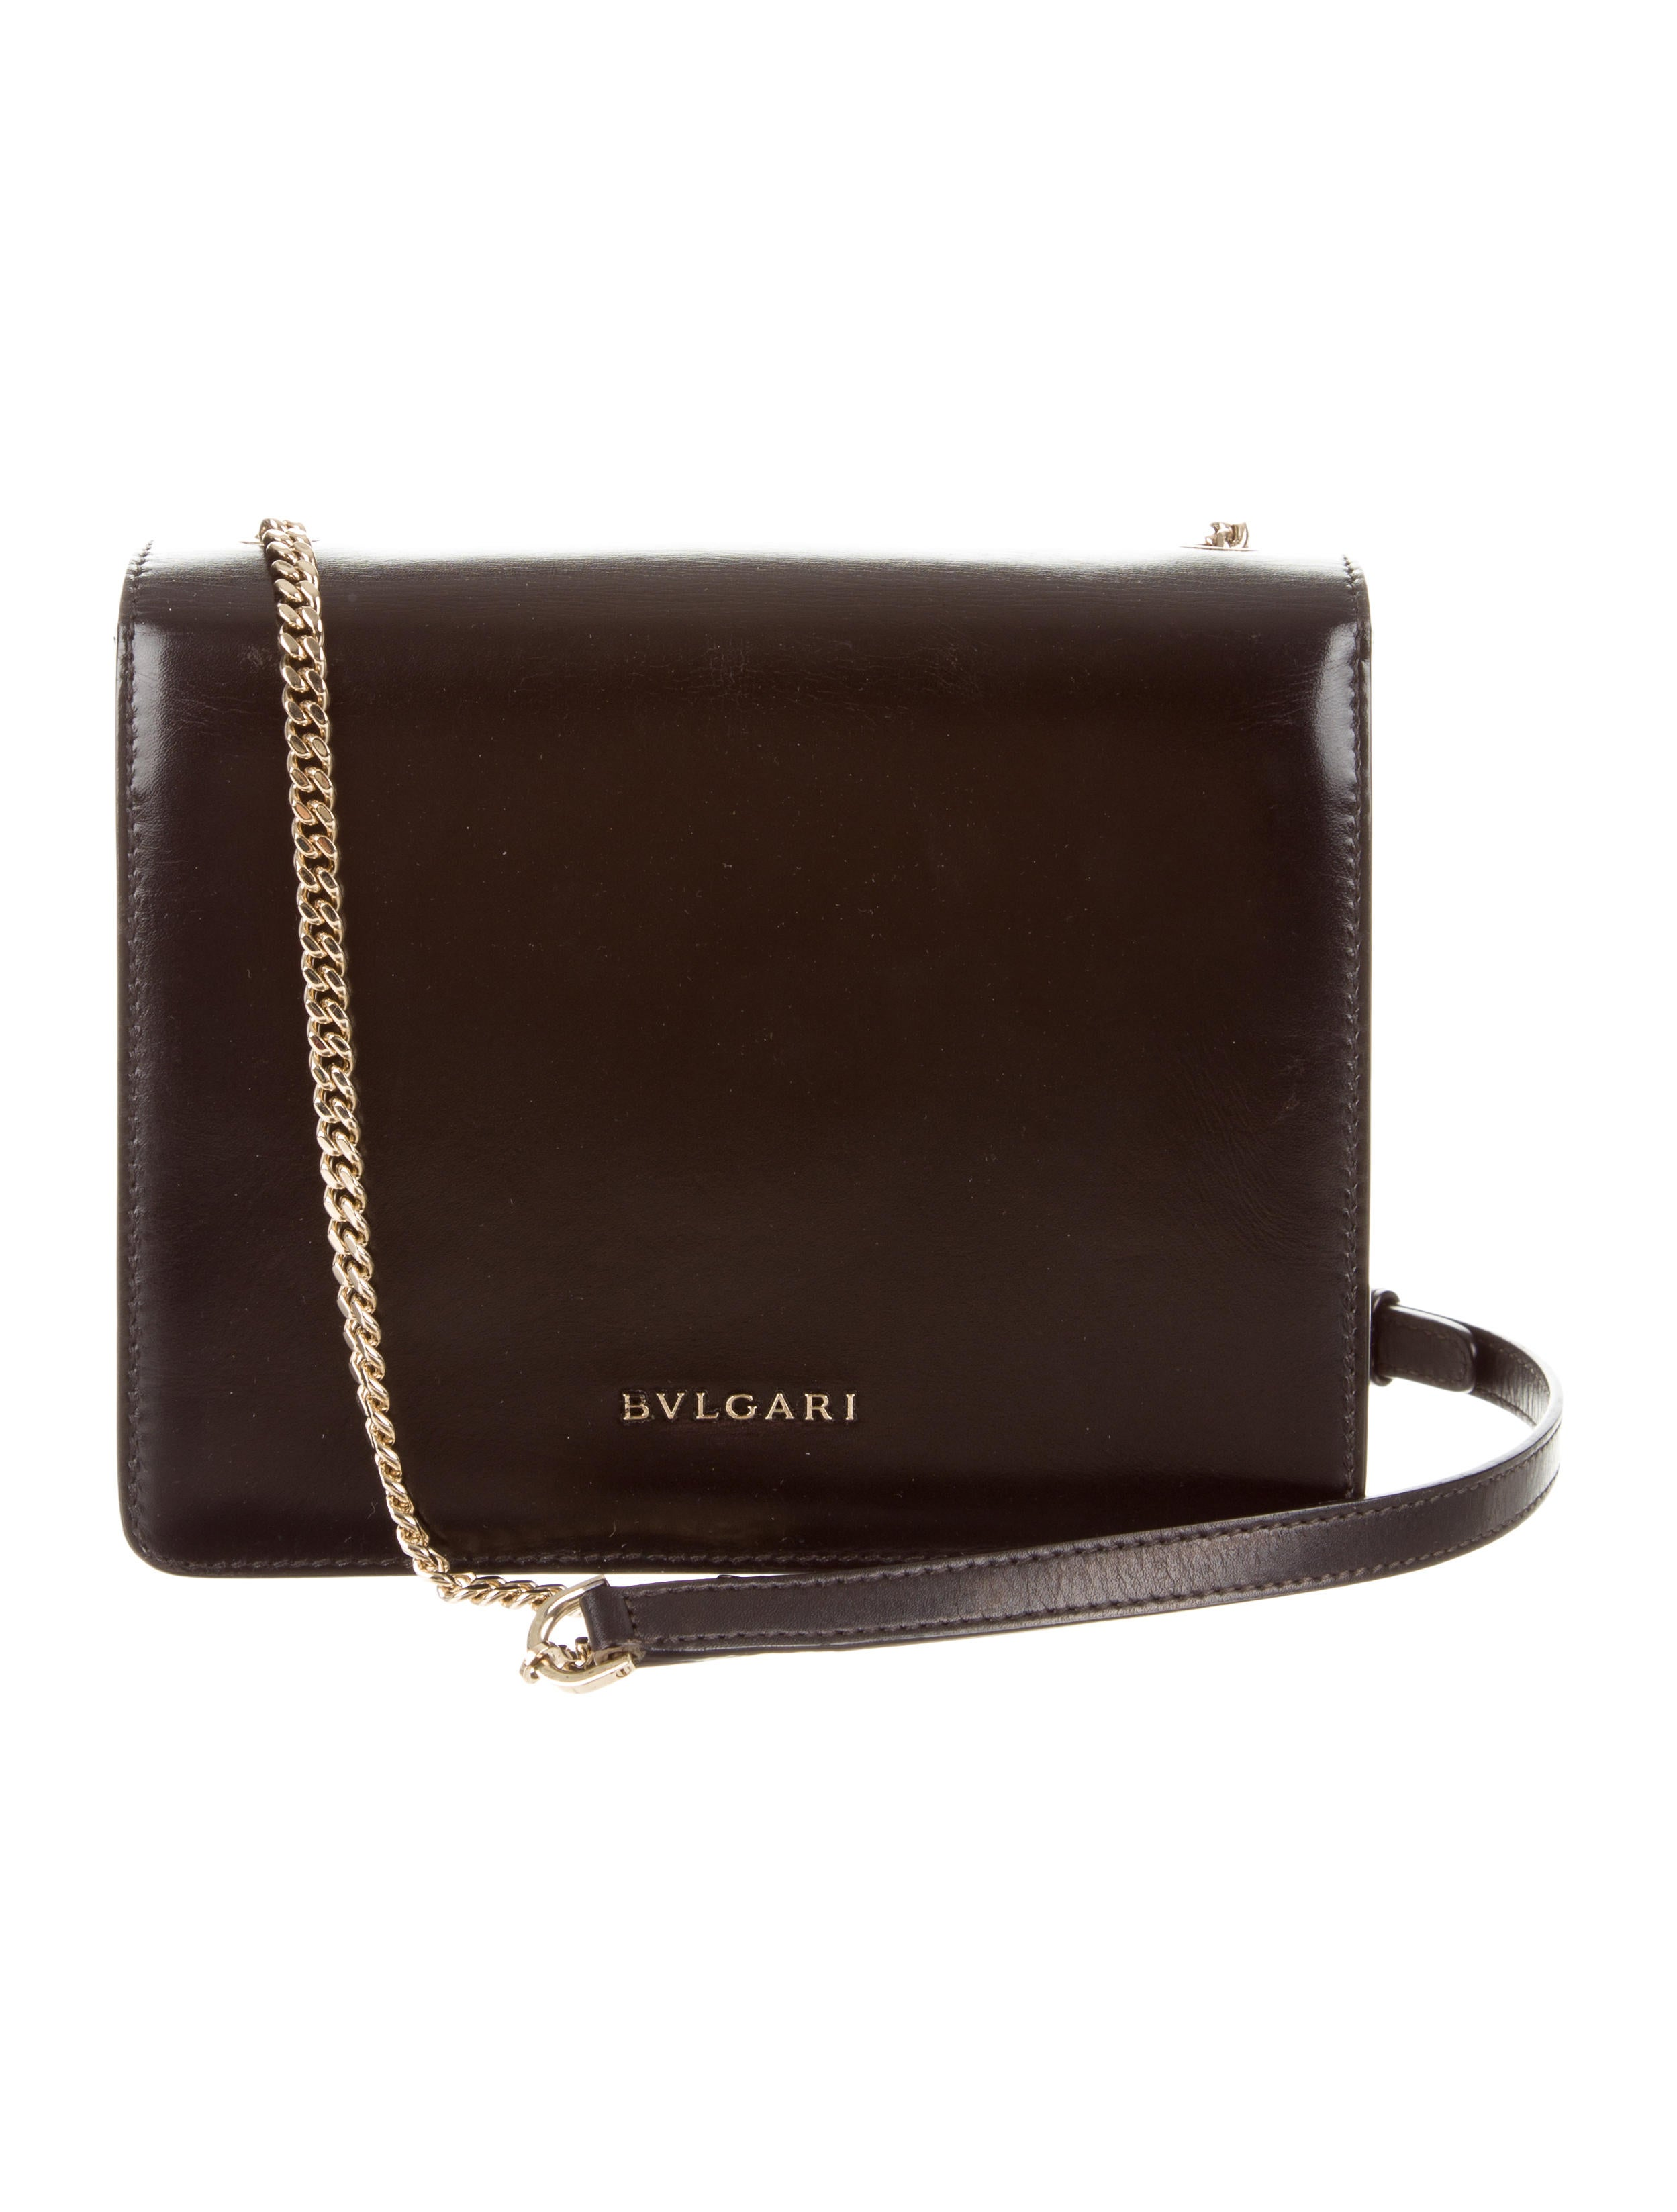 Bvlgari Logo-Embellished Crossbody Bag - Handbags - BUL22752 | The ...